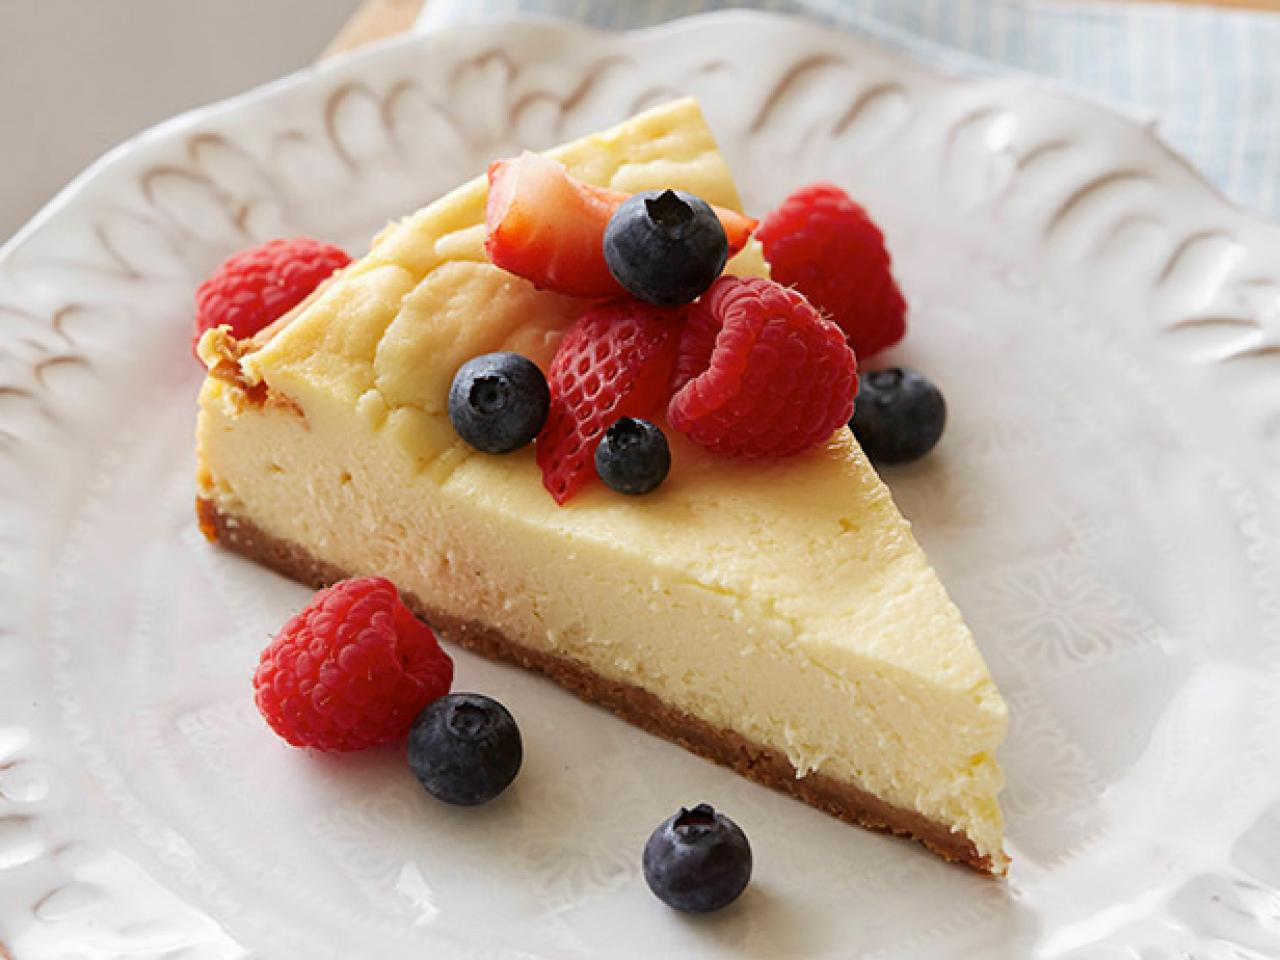 Cheesecake Pics, Food Collection